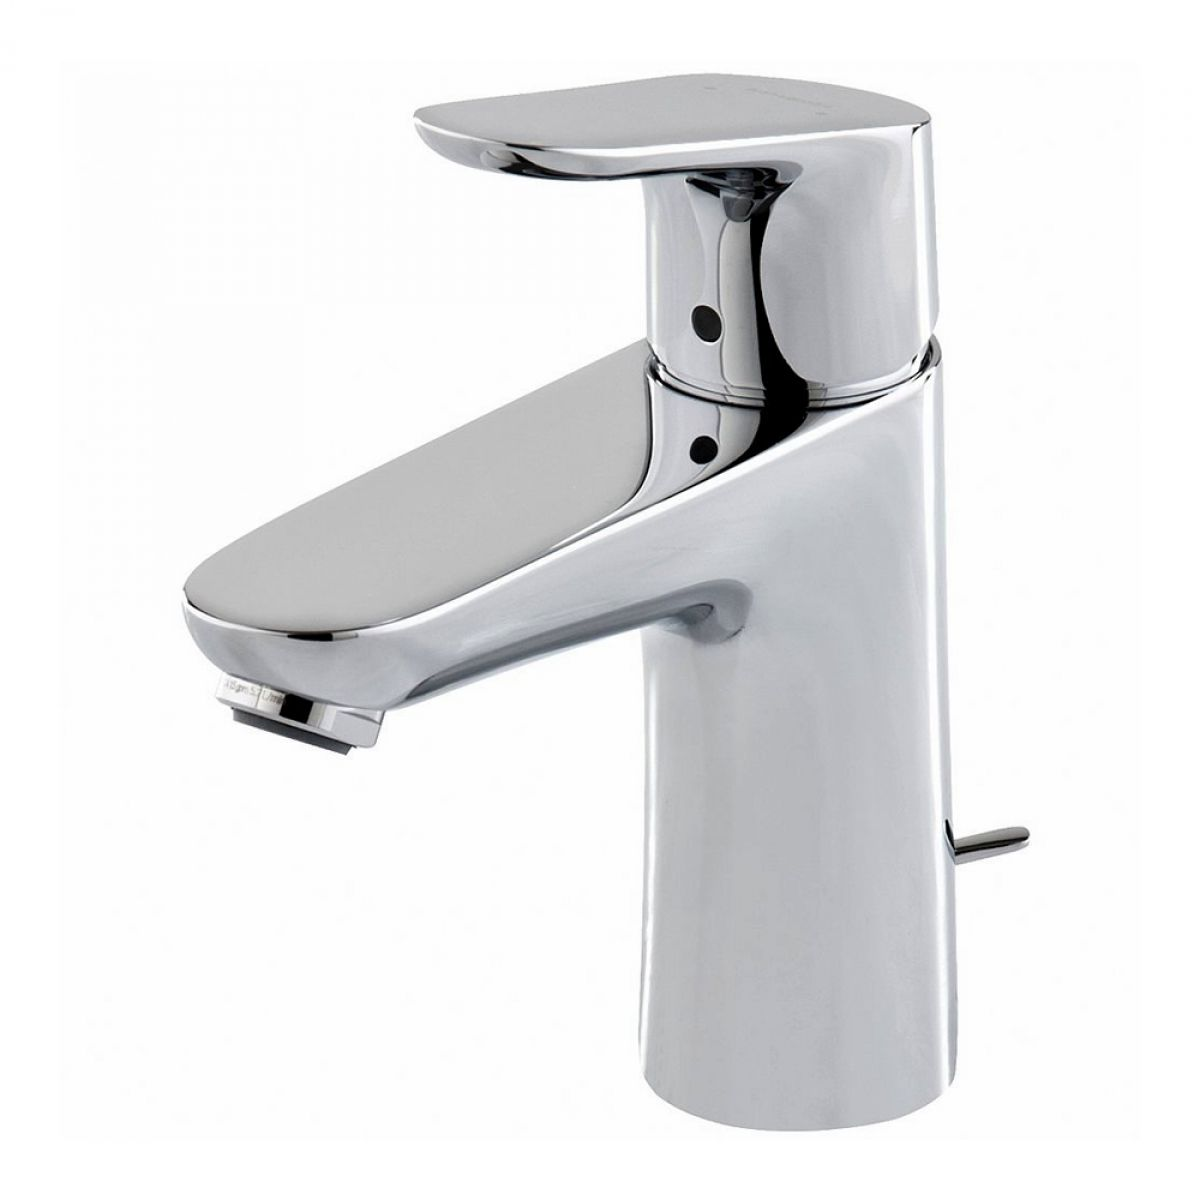 Hansgrohe Focus 100 Basin Mixer Tap Uk Bathrooms